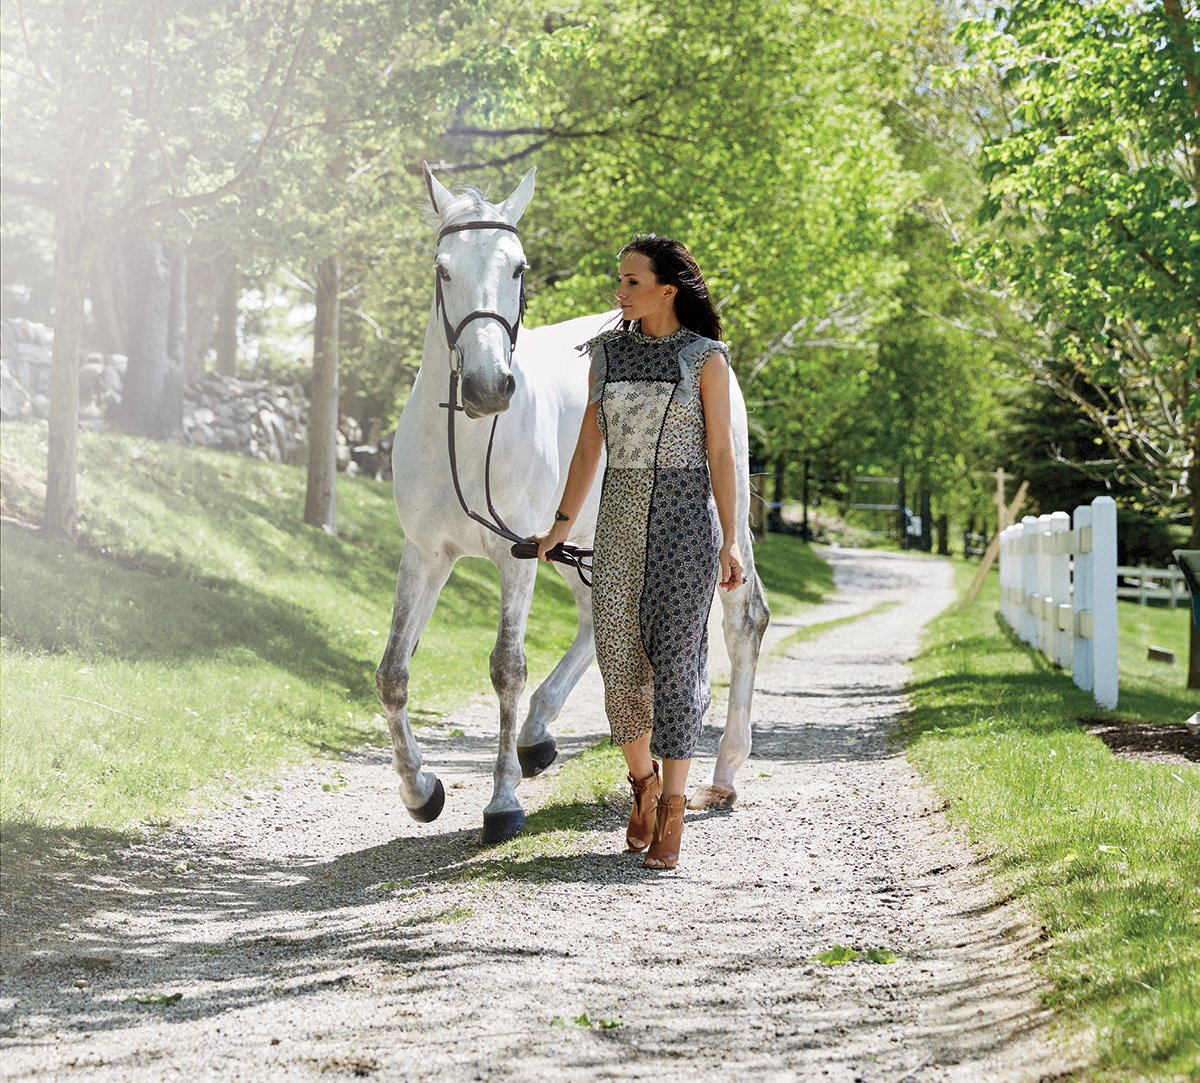 #GeorginaBloomberg on her equestrian career & why she's excited for the @HamptonClassic: https://t.co/2dmfuQJ7iz https://t.co/LibE5CO60m